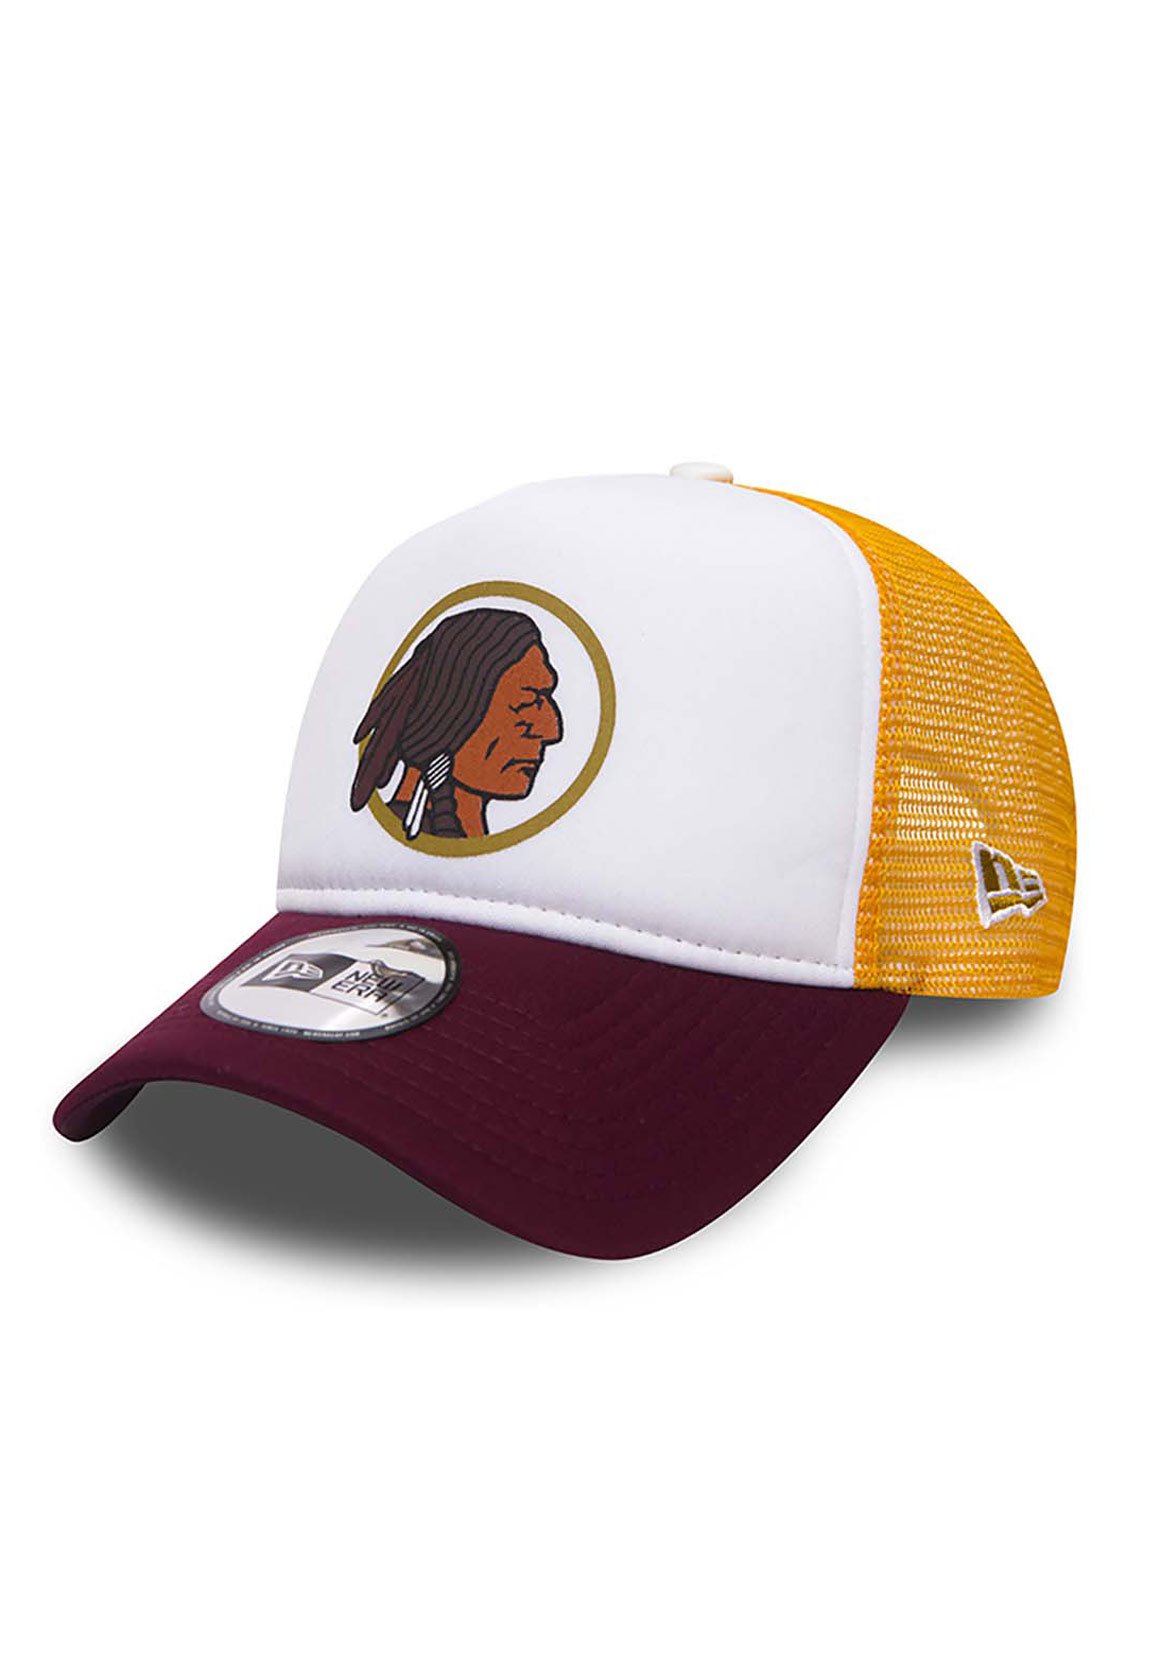 New Era NFL Throwback Truck Adjustable WASHINGT...